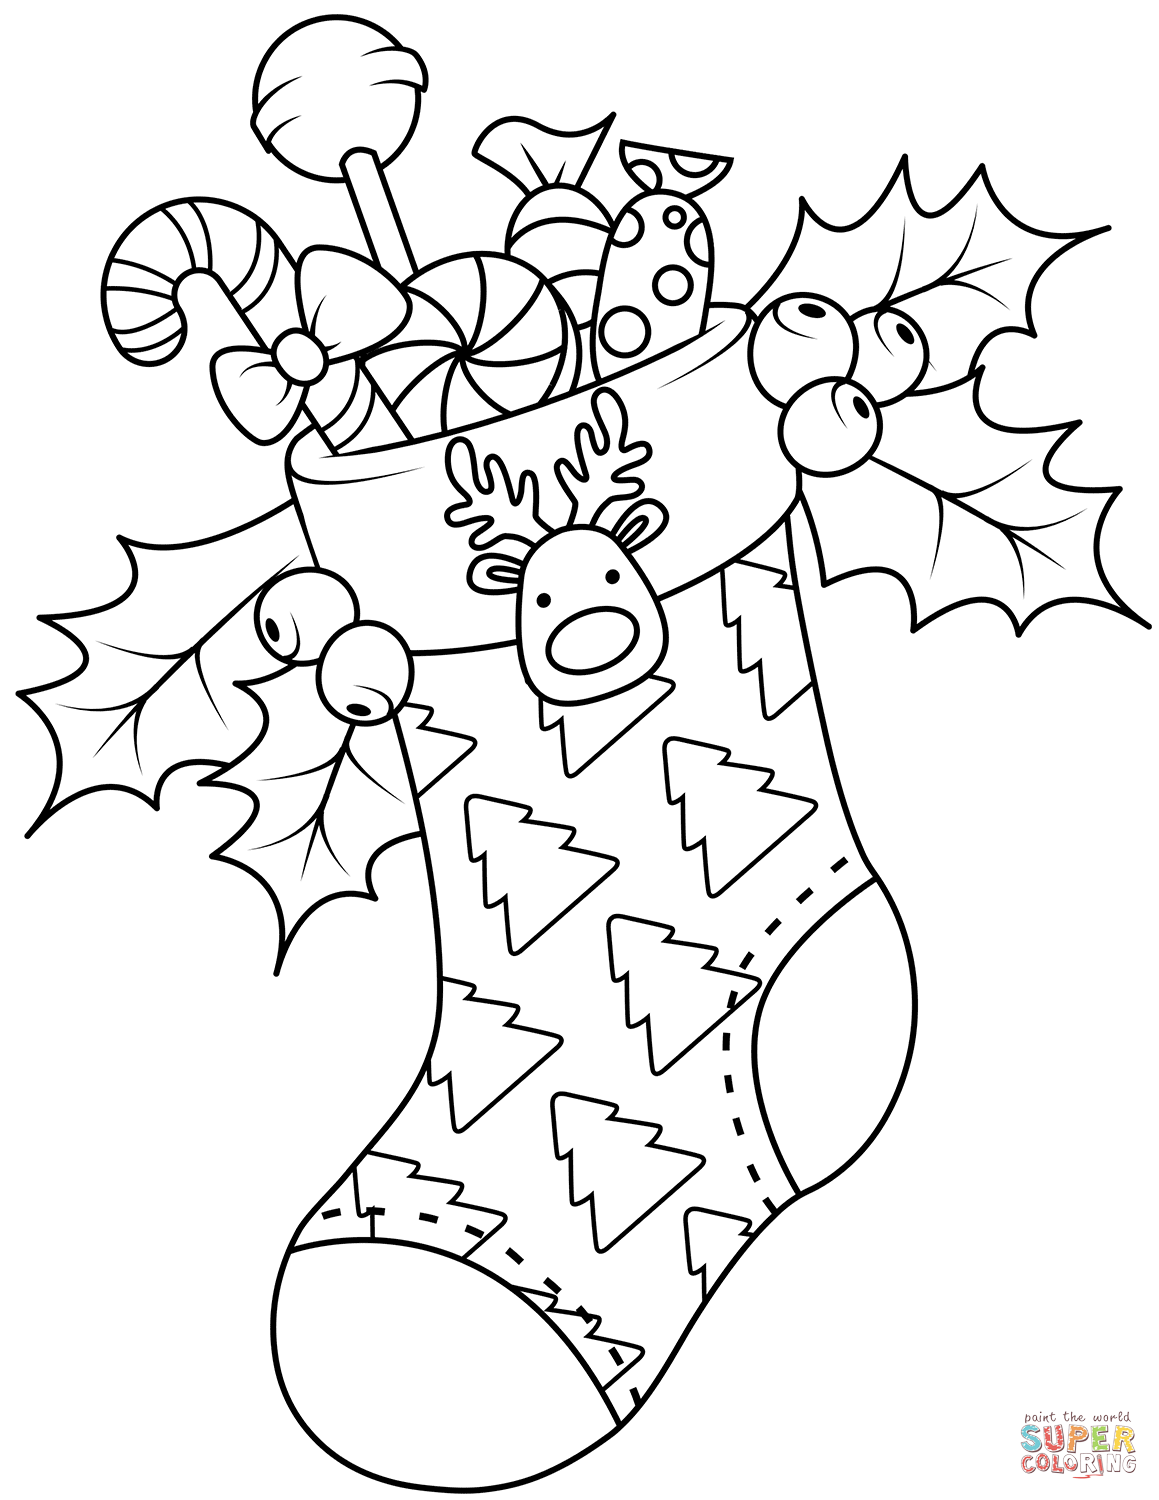 christmas coloring pages stocking coloring page stocking full of gifts christmas stocking pages coloring